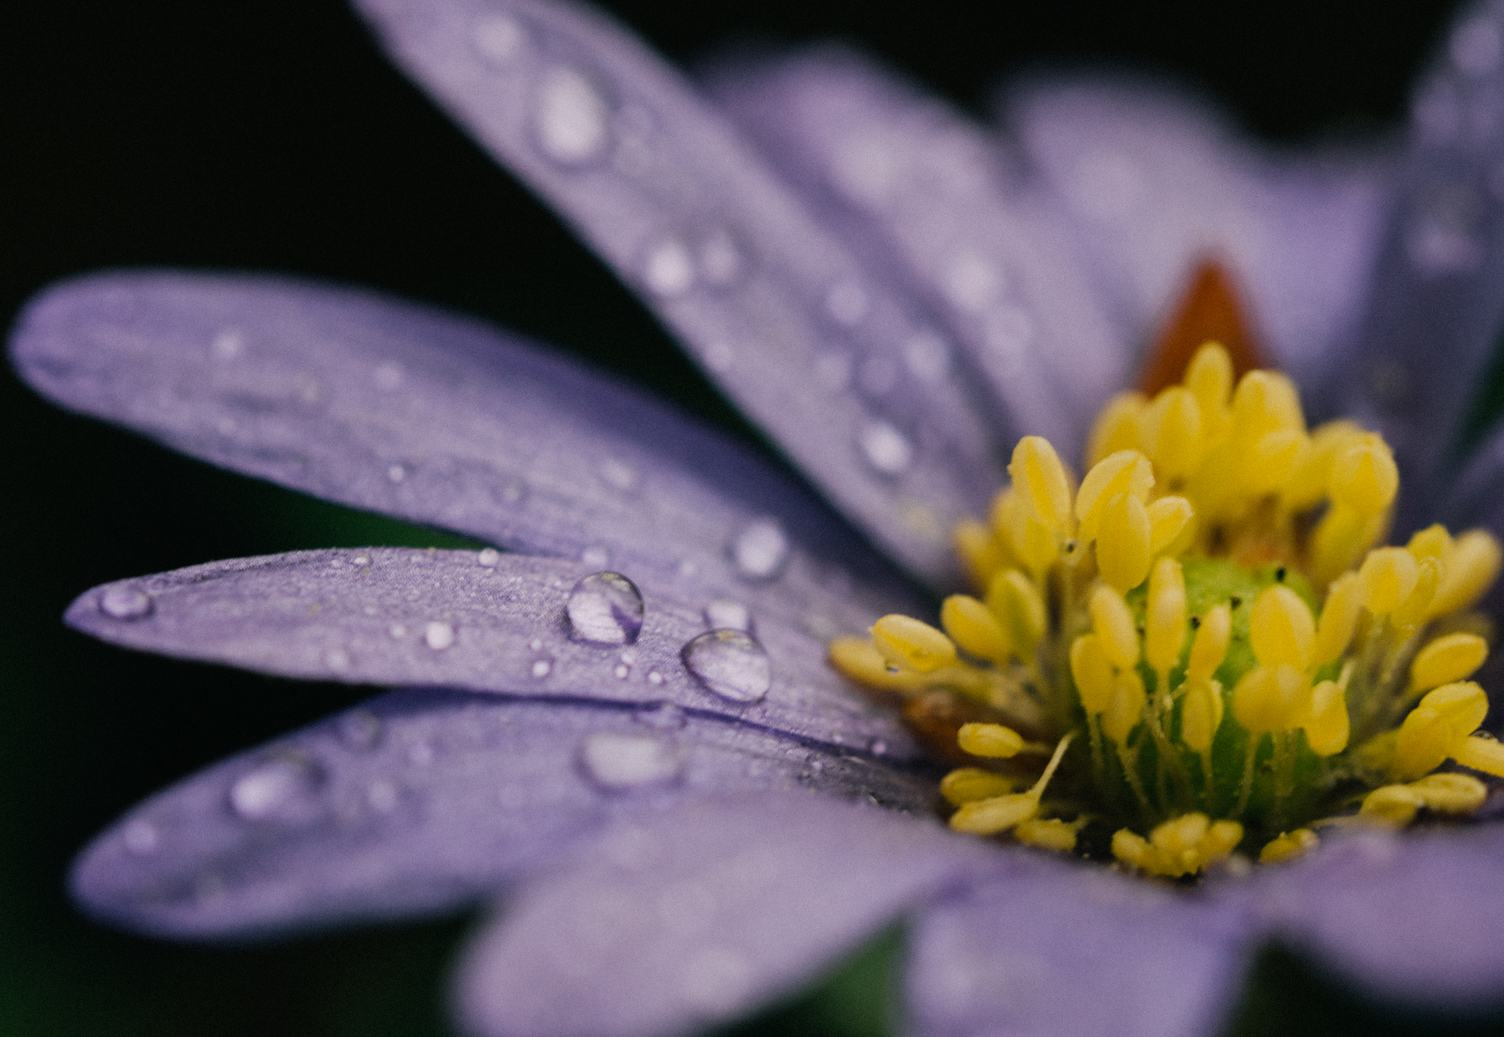 Wet Violet Flower with Yellow Anthers Closeup